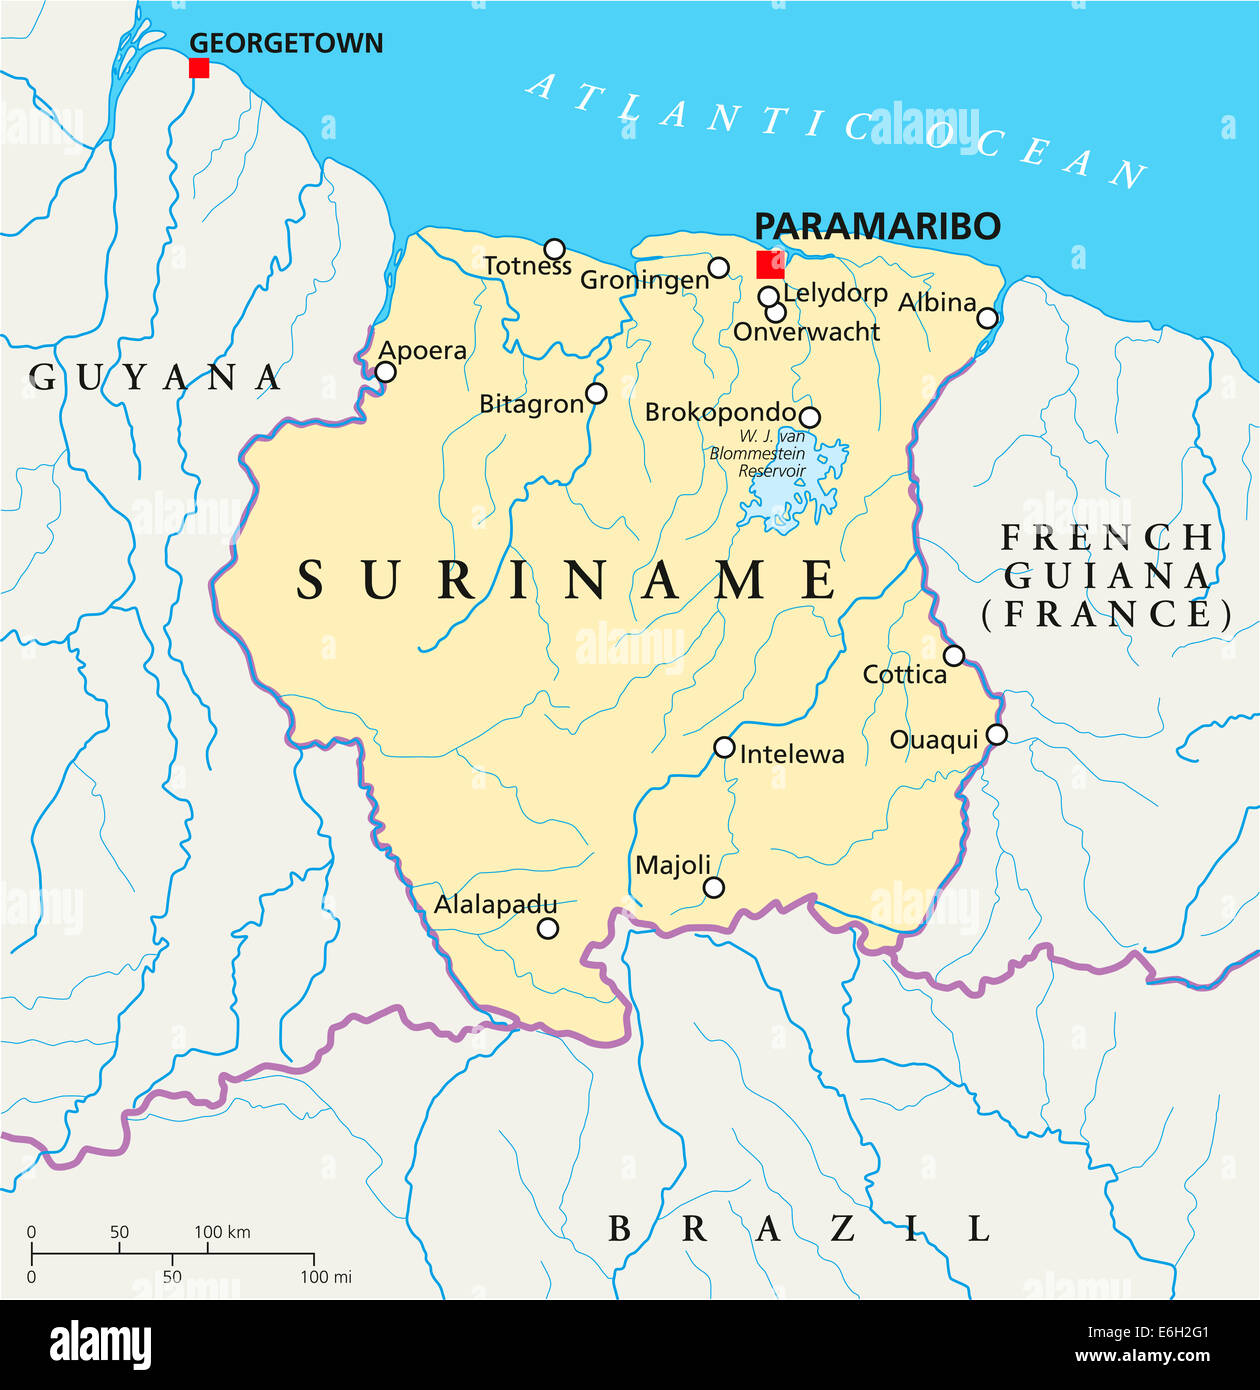 Suriname Political Map with capital Paramaribo national borders